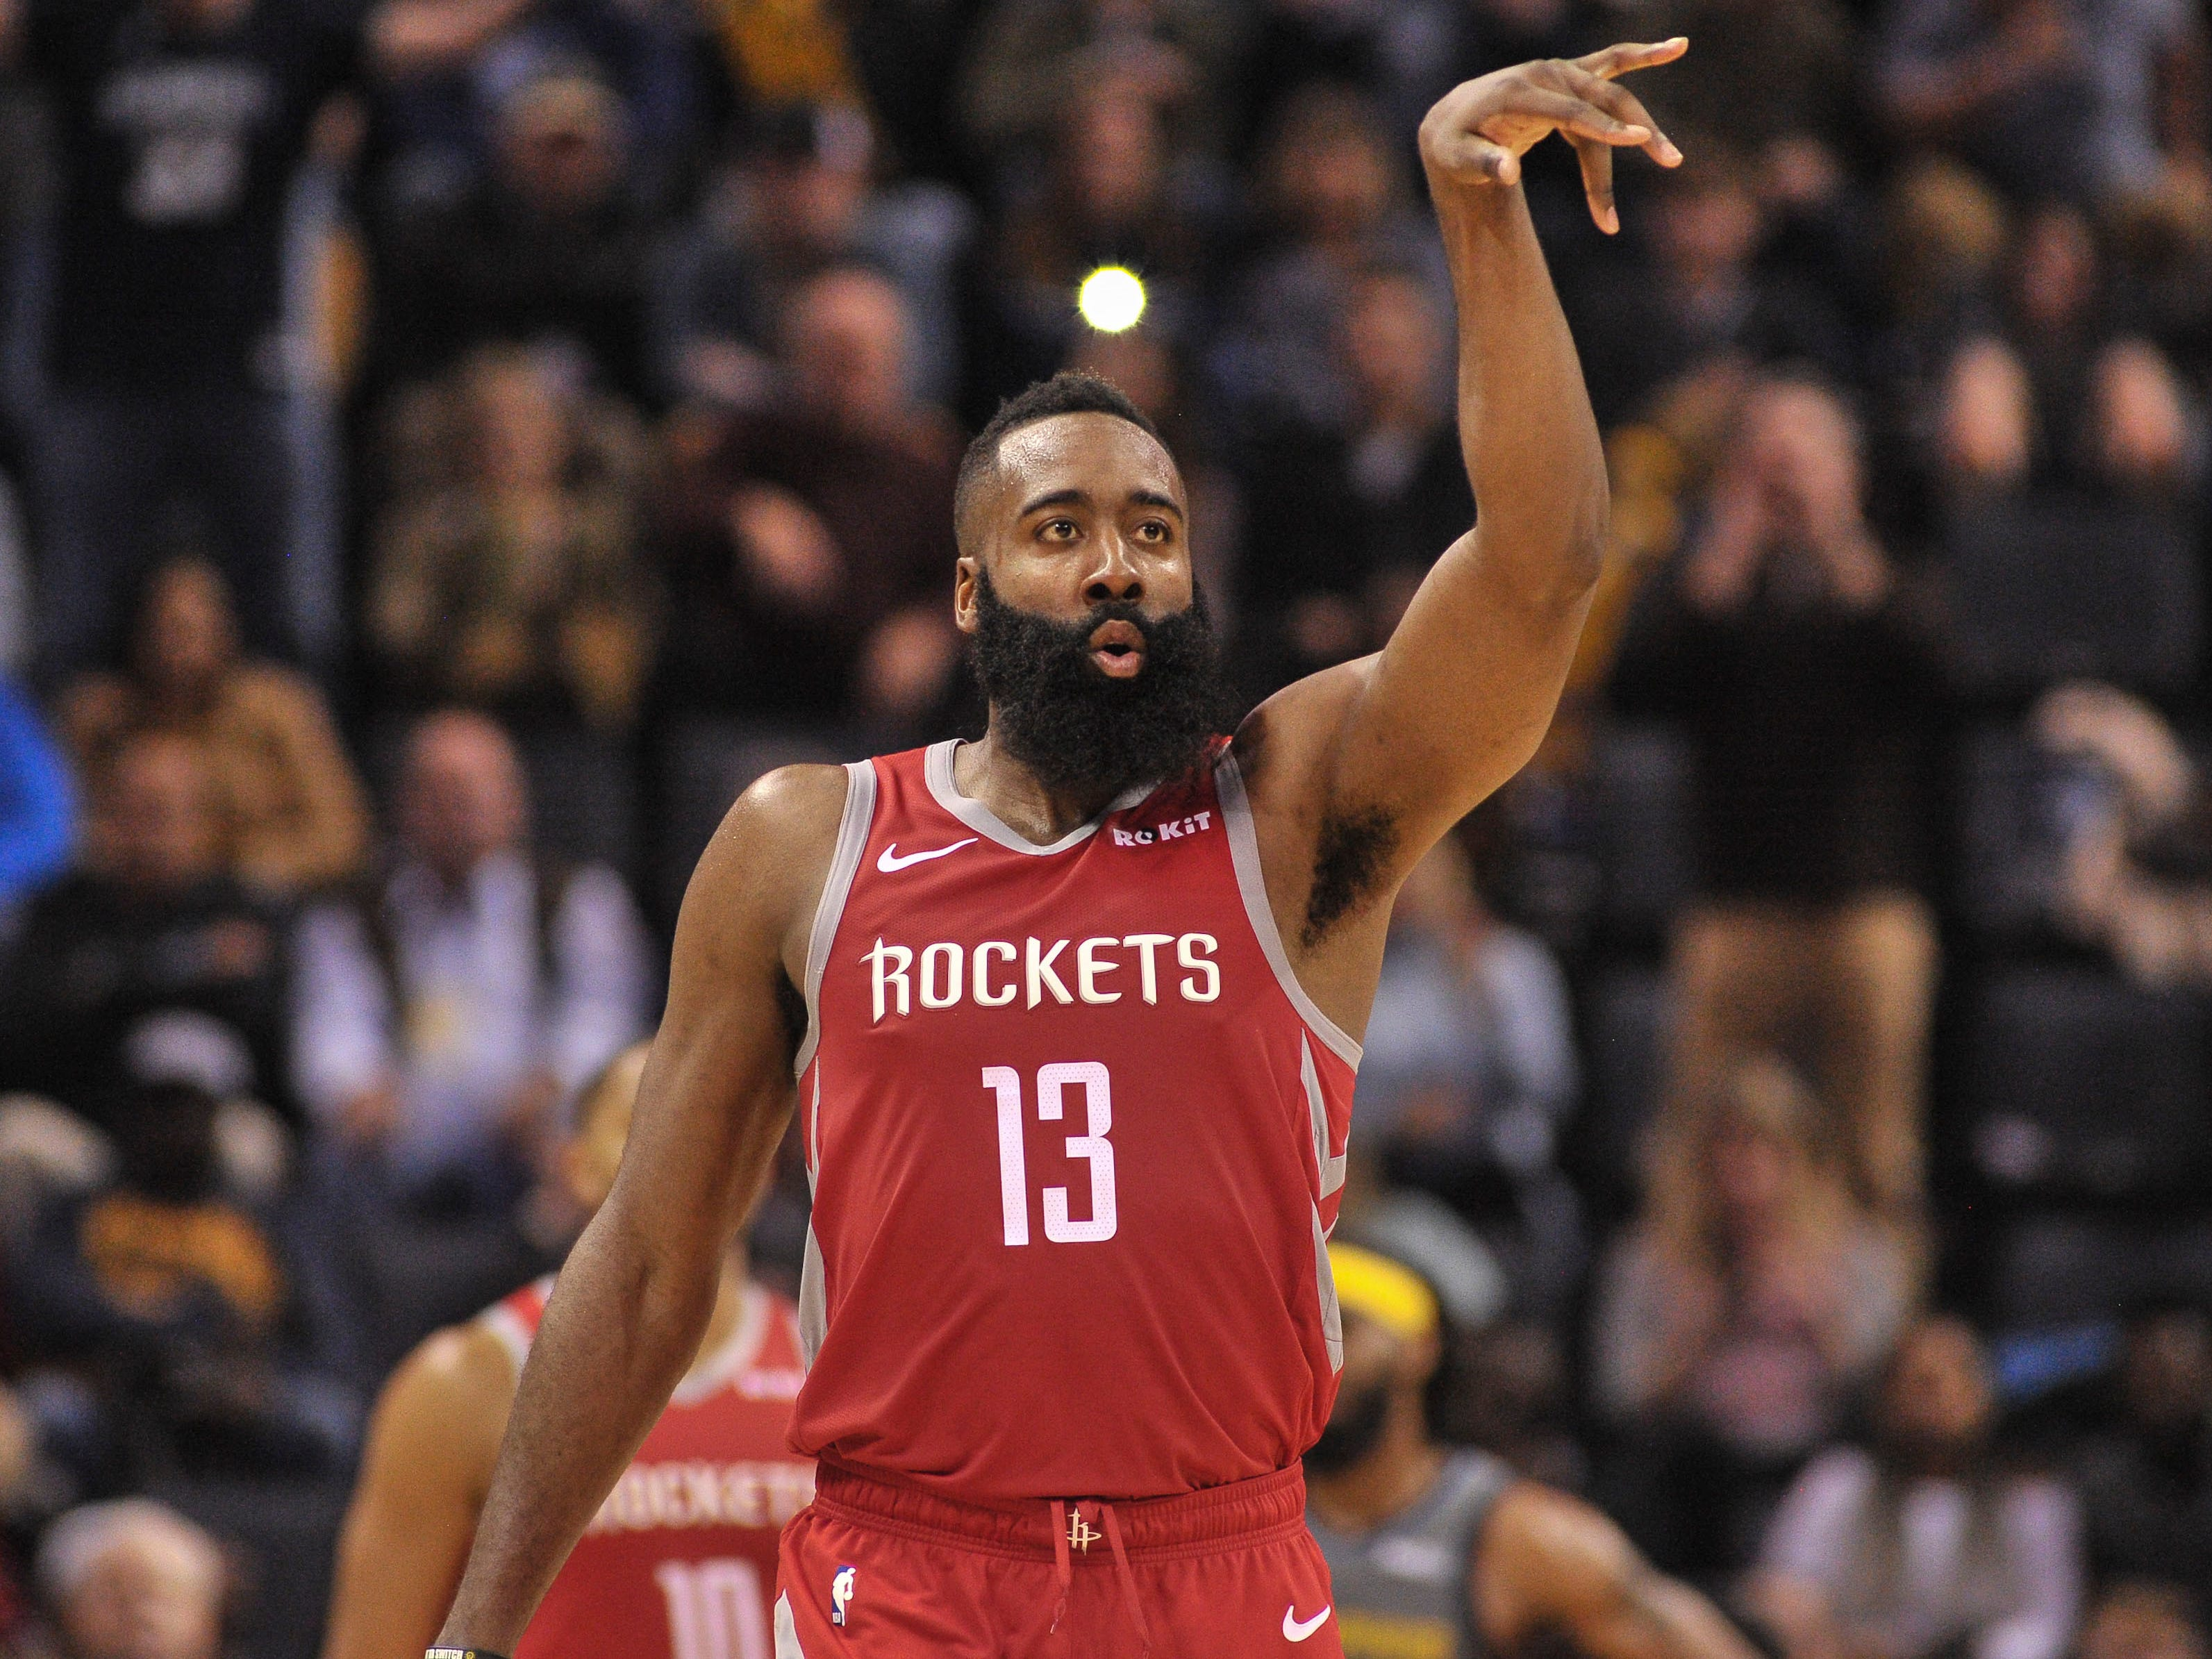 26. James Harden, Rockets (Dec. 15): 32 points, 12 rebounds, 10 assist in 105-97 win over Grizzlies (third of season).